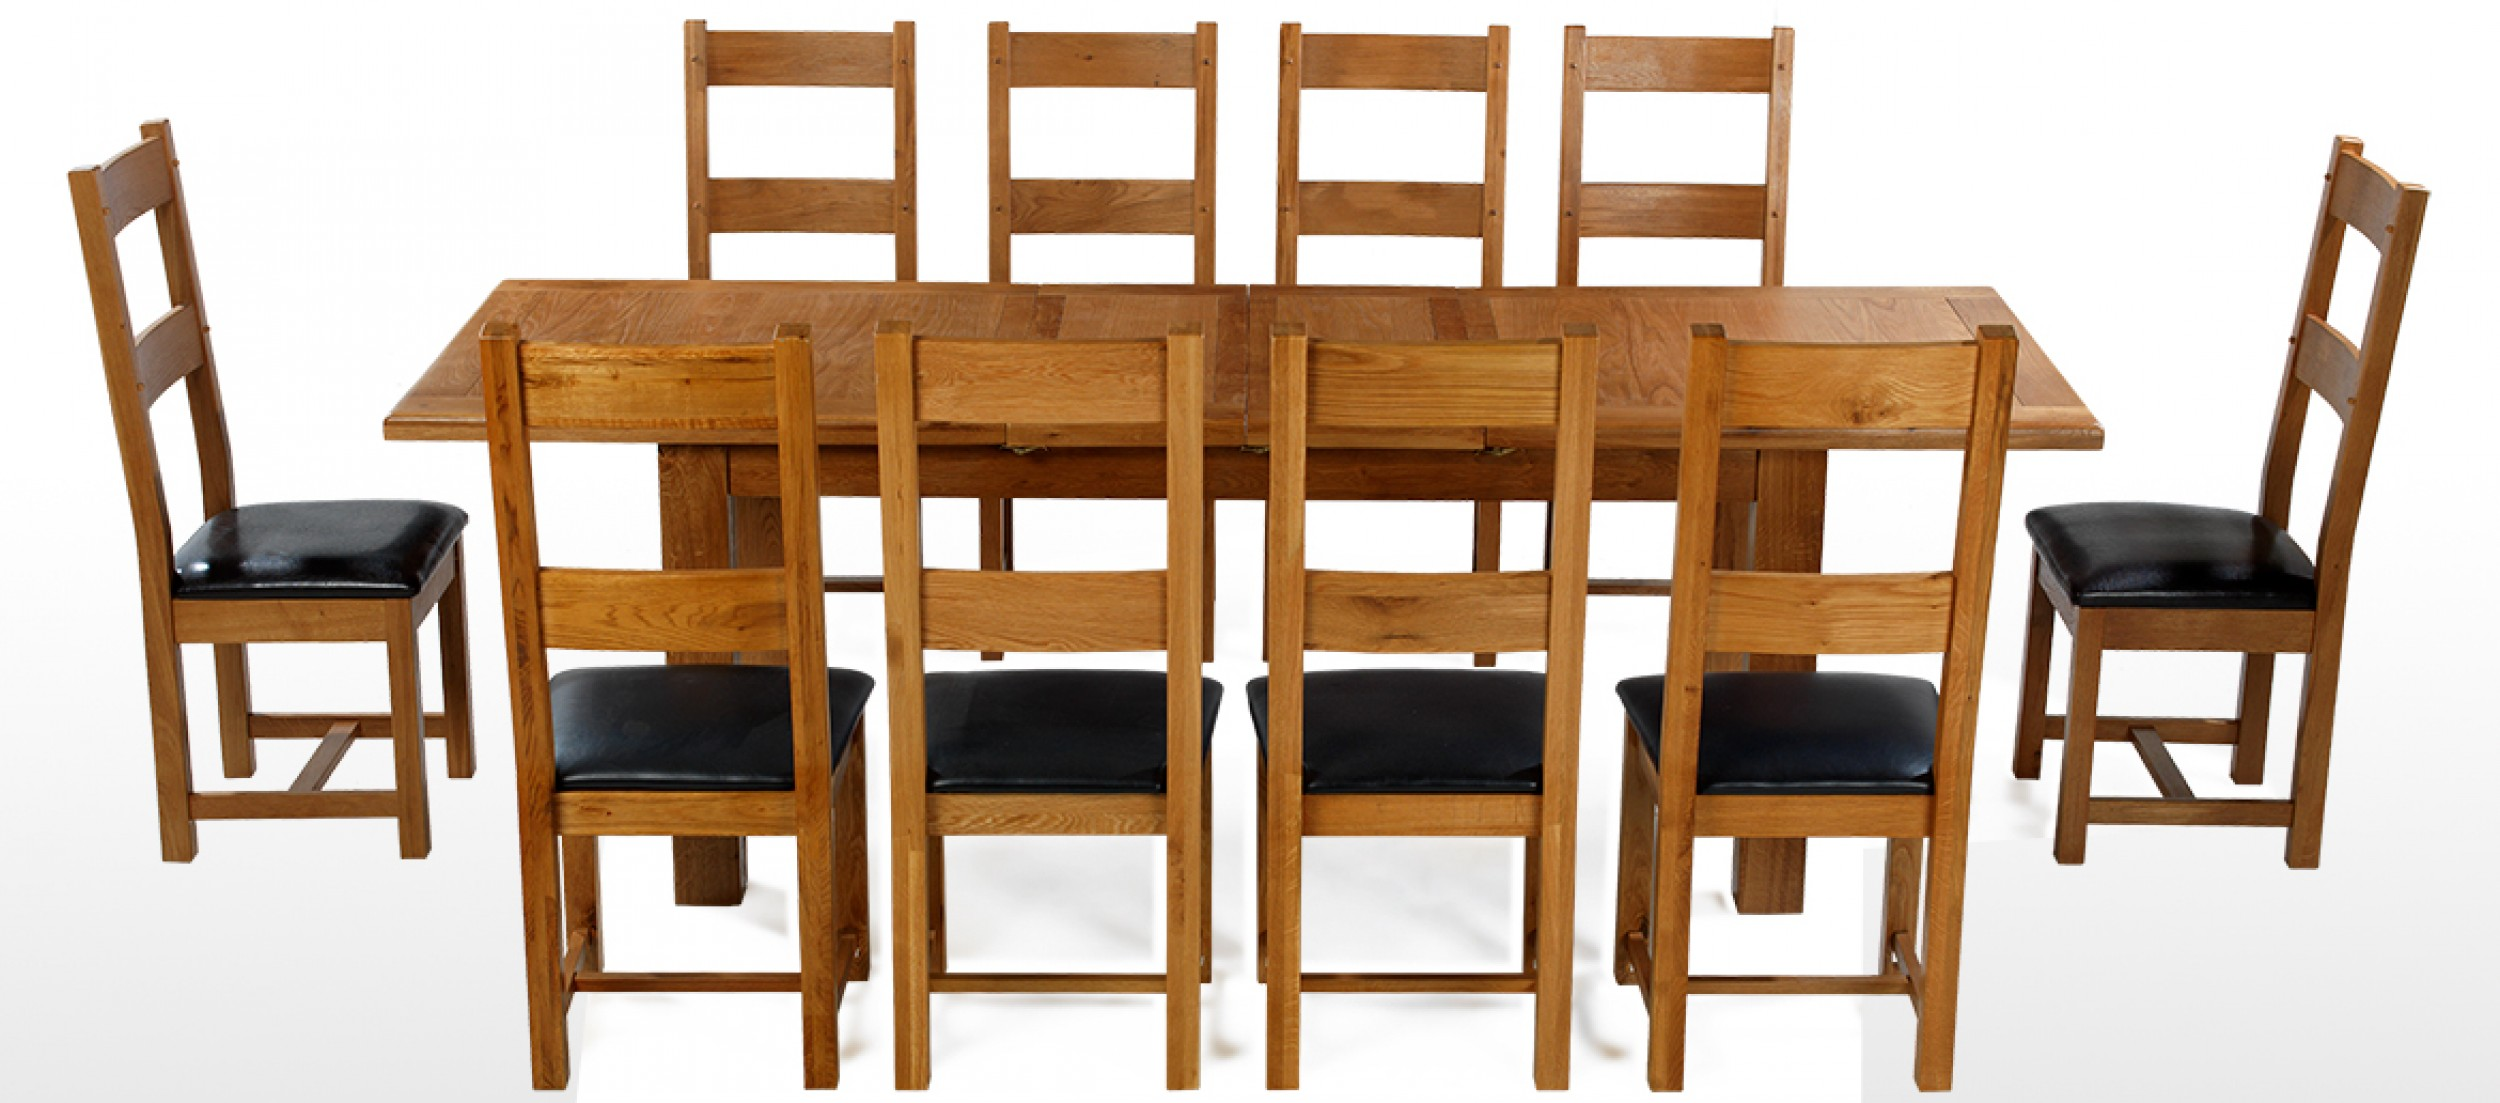 10 chair dining table set wedding covers hire cheshire barham oak 180 250 cm extending and chairs